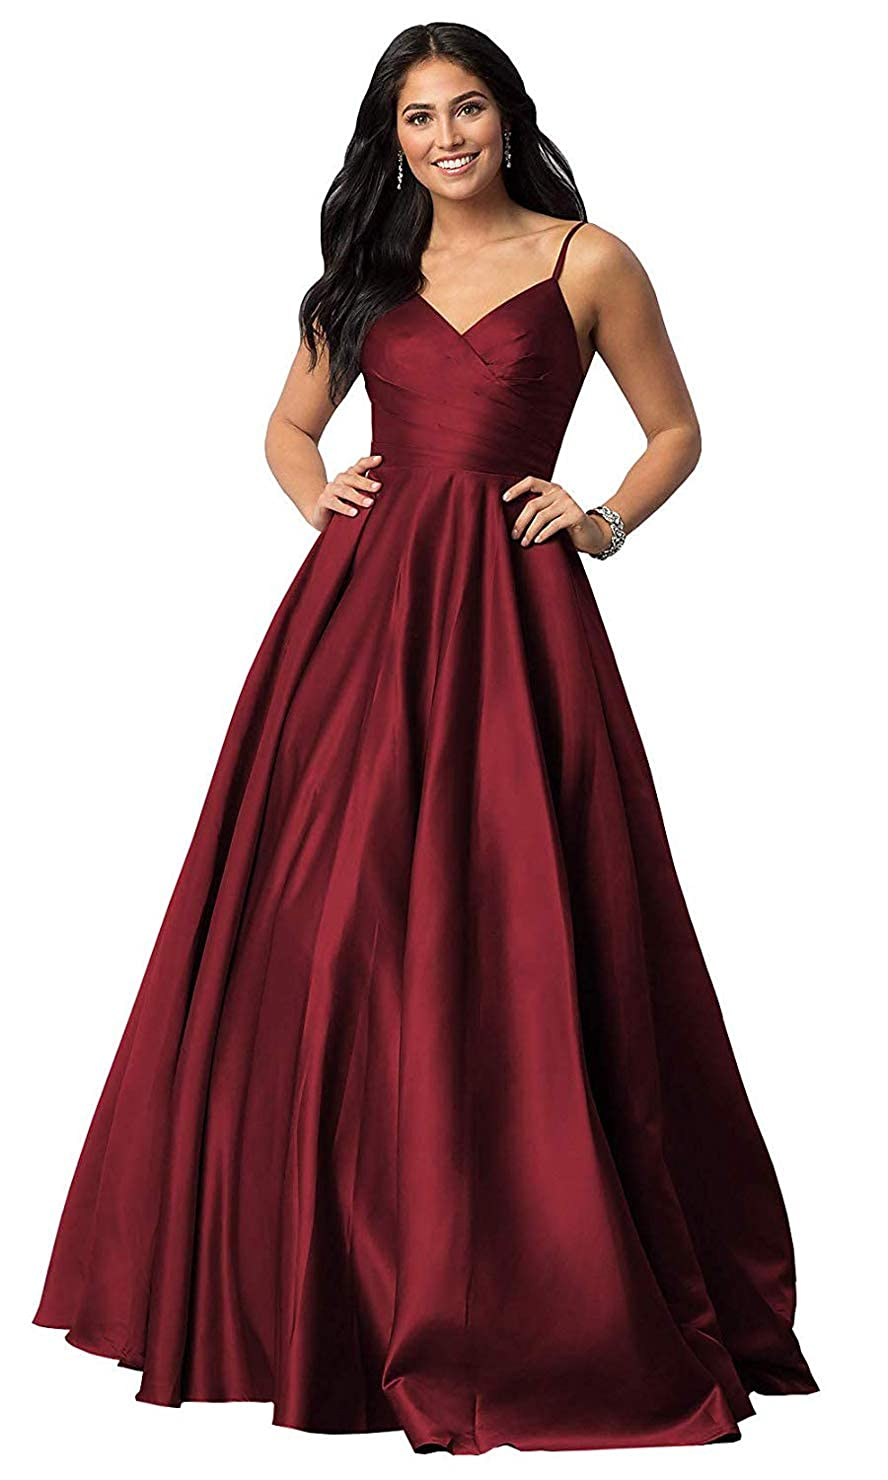 Burgundy FeiYueXinXing Satin VNeck Prom Dresses Long Spaghetti Strap Formal Prom Evening Gown